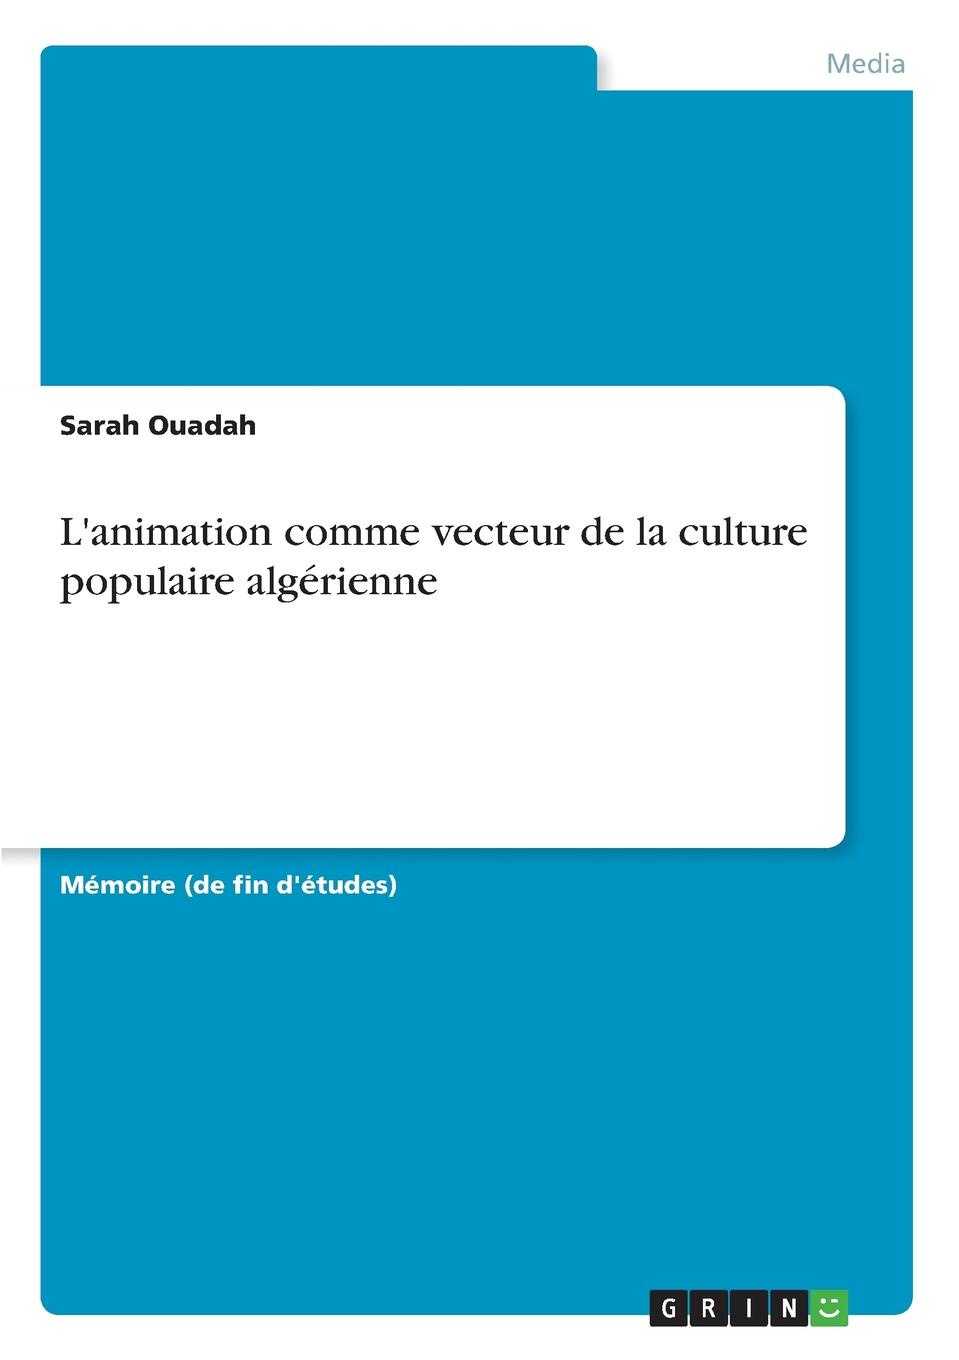 Sarah Ouadah L.animation comme vecteur de la culture populaire algerienne sully prudhomme l expression dans les beaux arts application de la psychologie a l etude de l artiste et des beaux arts prose 1883 french edition